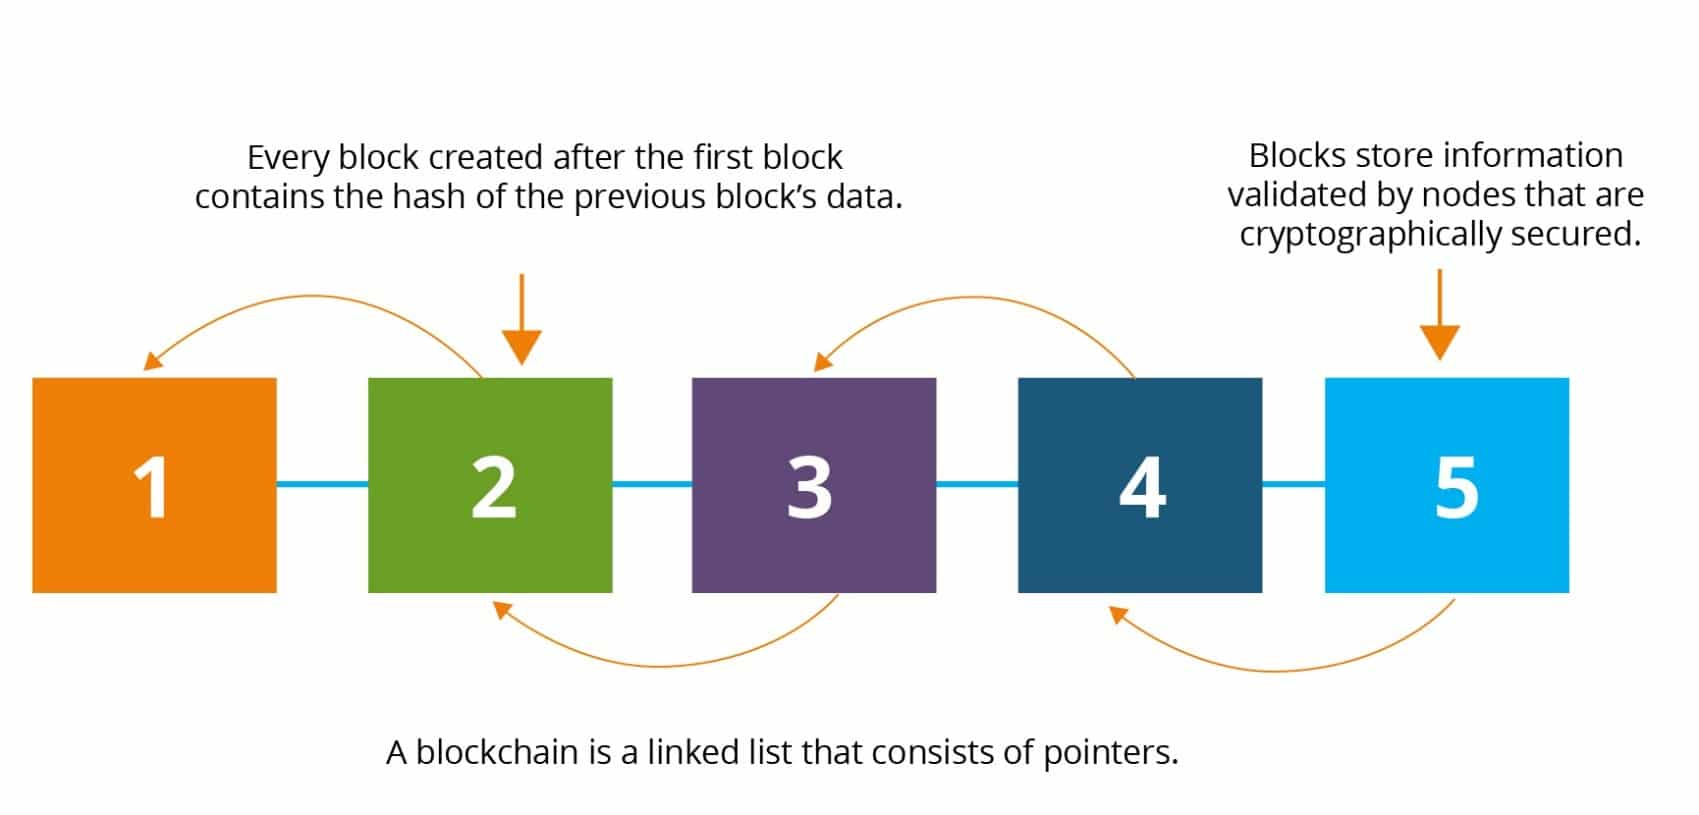 blockchain as linked list